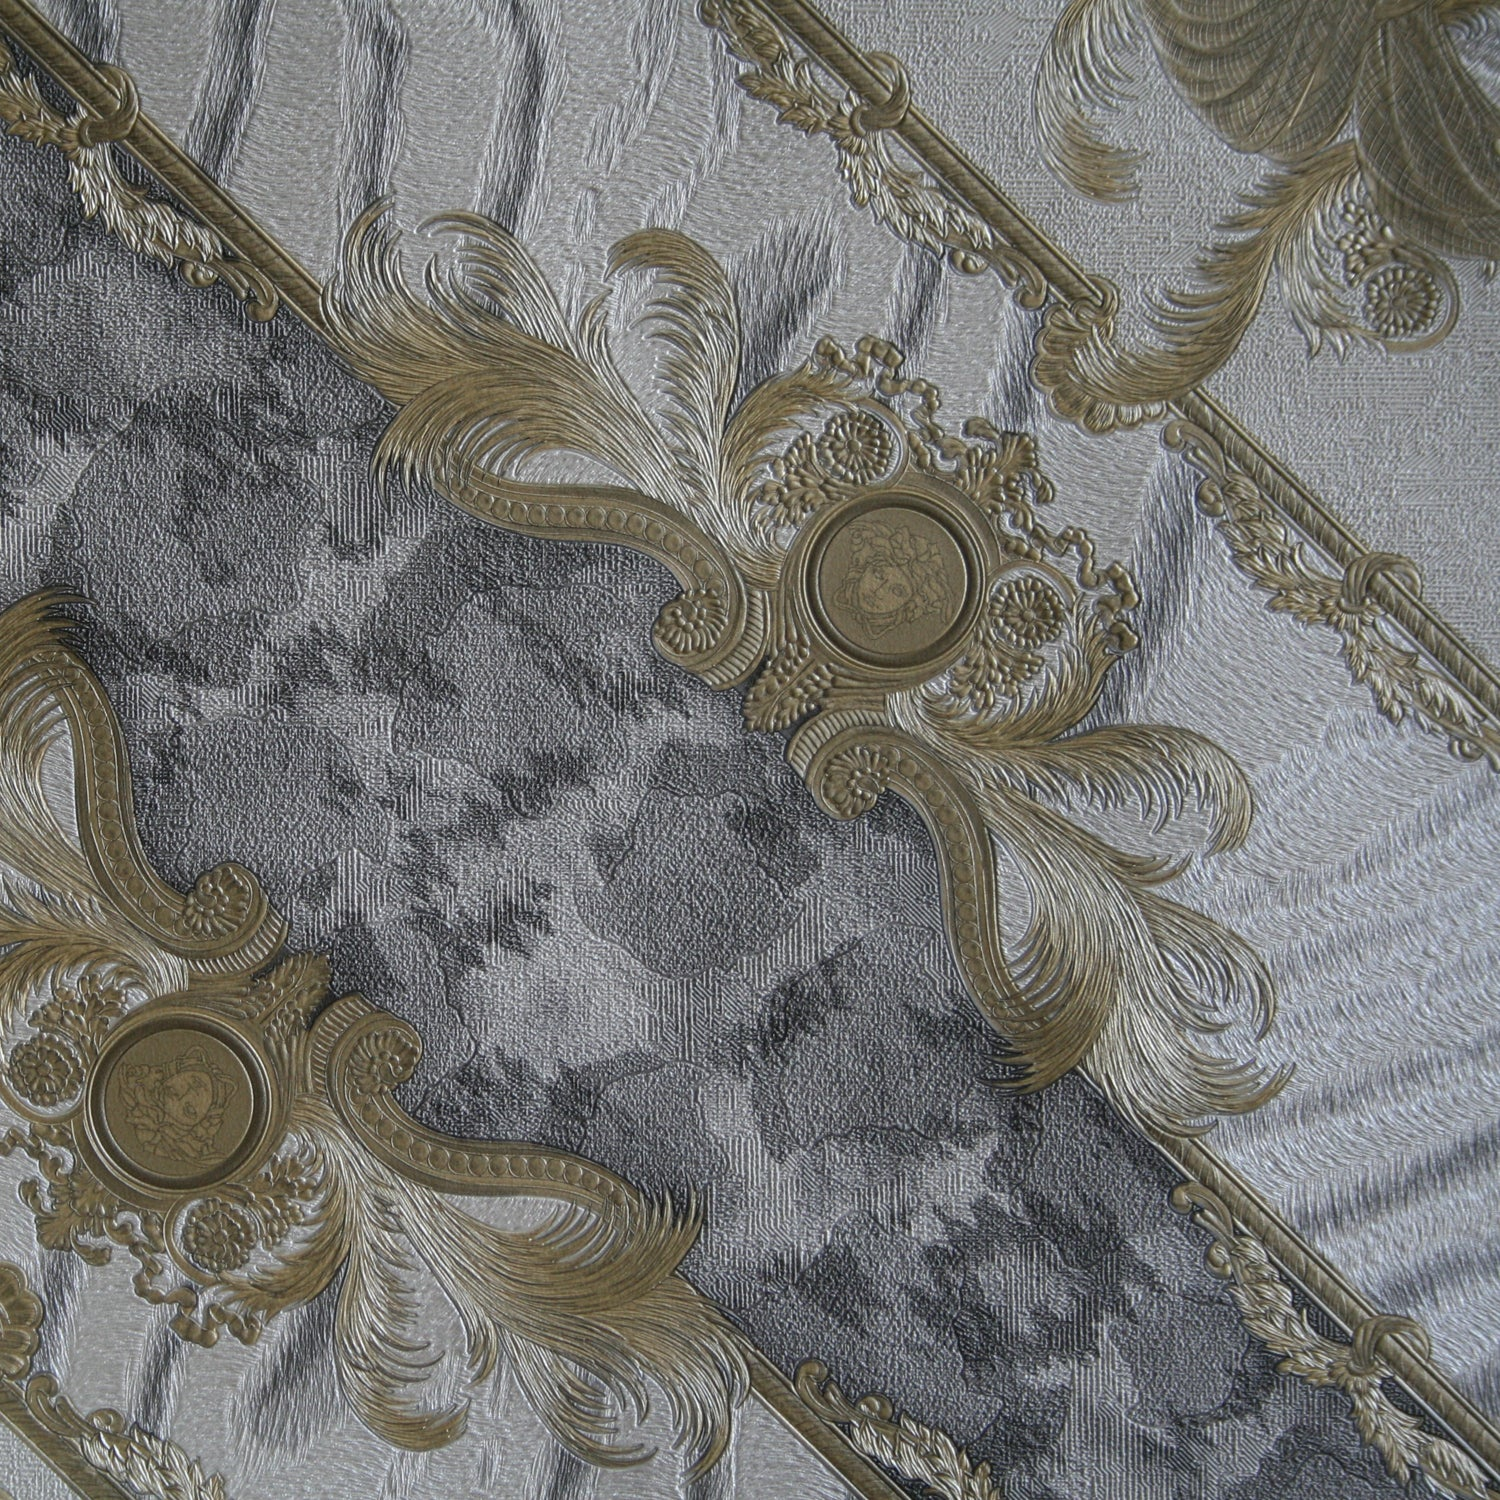 Versace Animal Plaid | Designer Animal Skin Effect Wallpaper in Grey, Gold & Off White